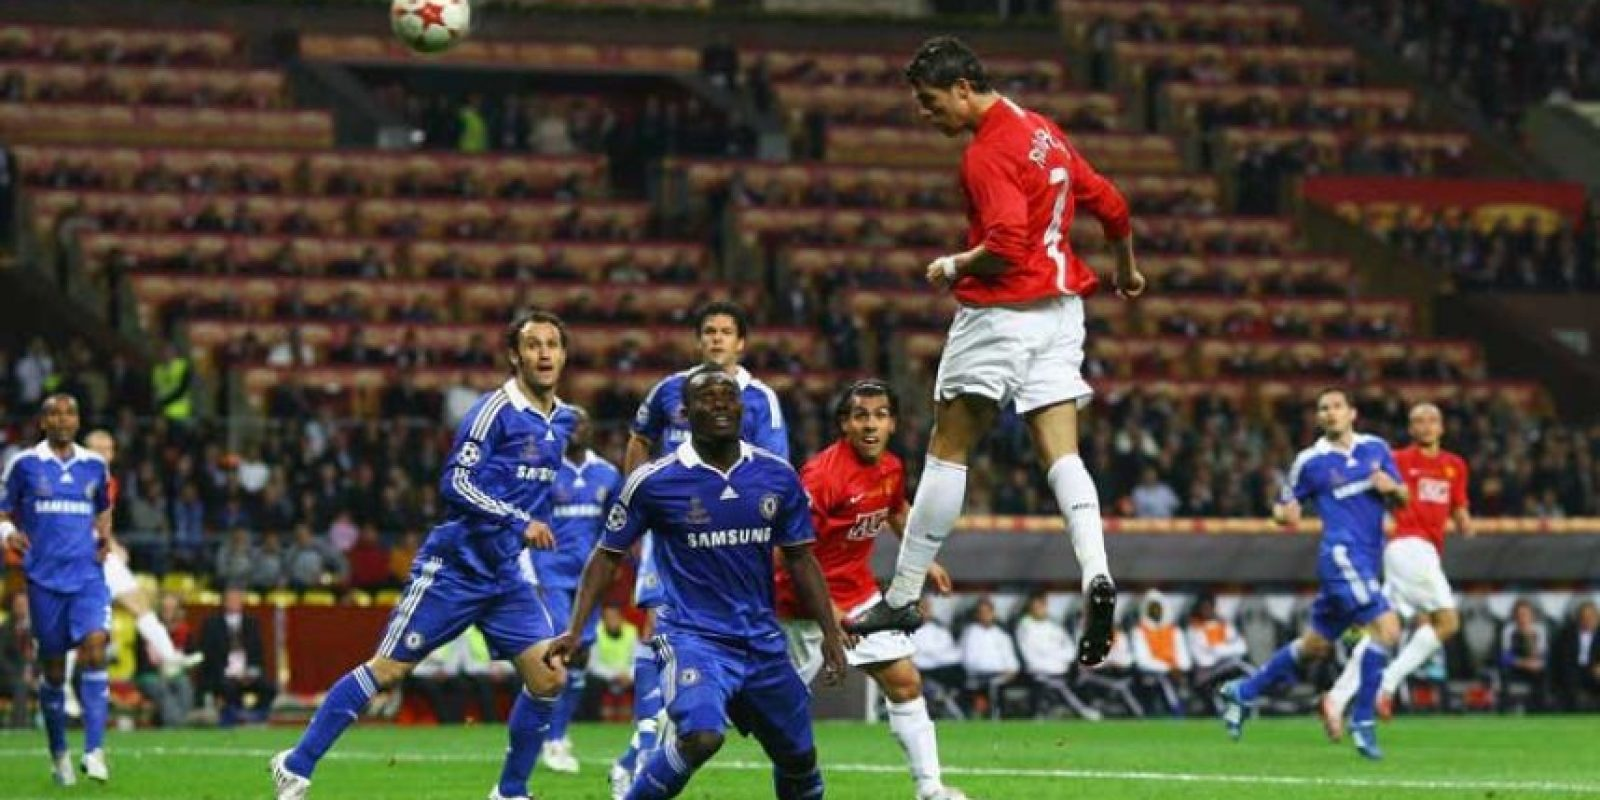 2008: Manchester United vs. Chelsea Foto: Getty Images